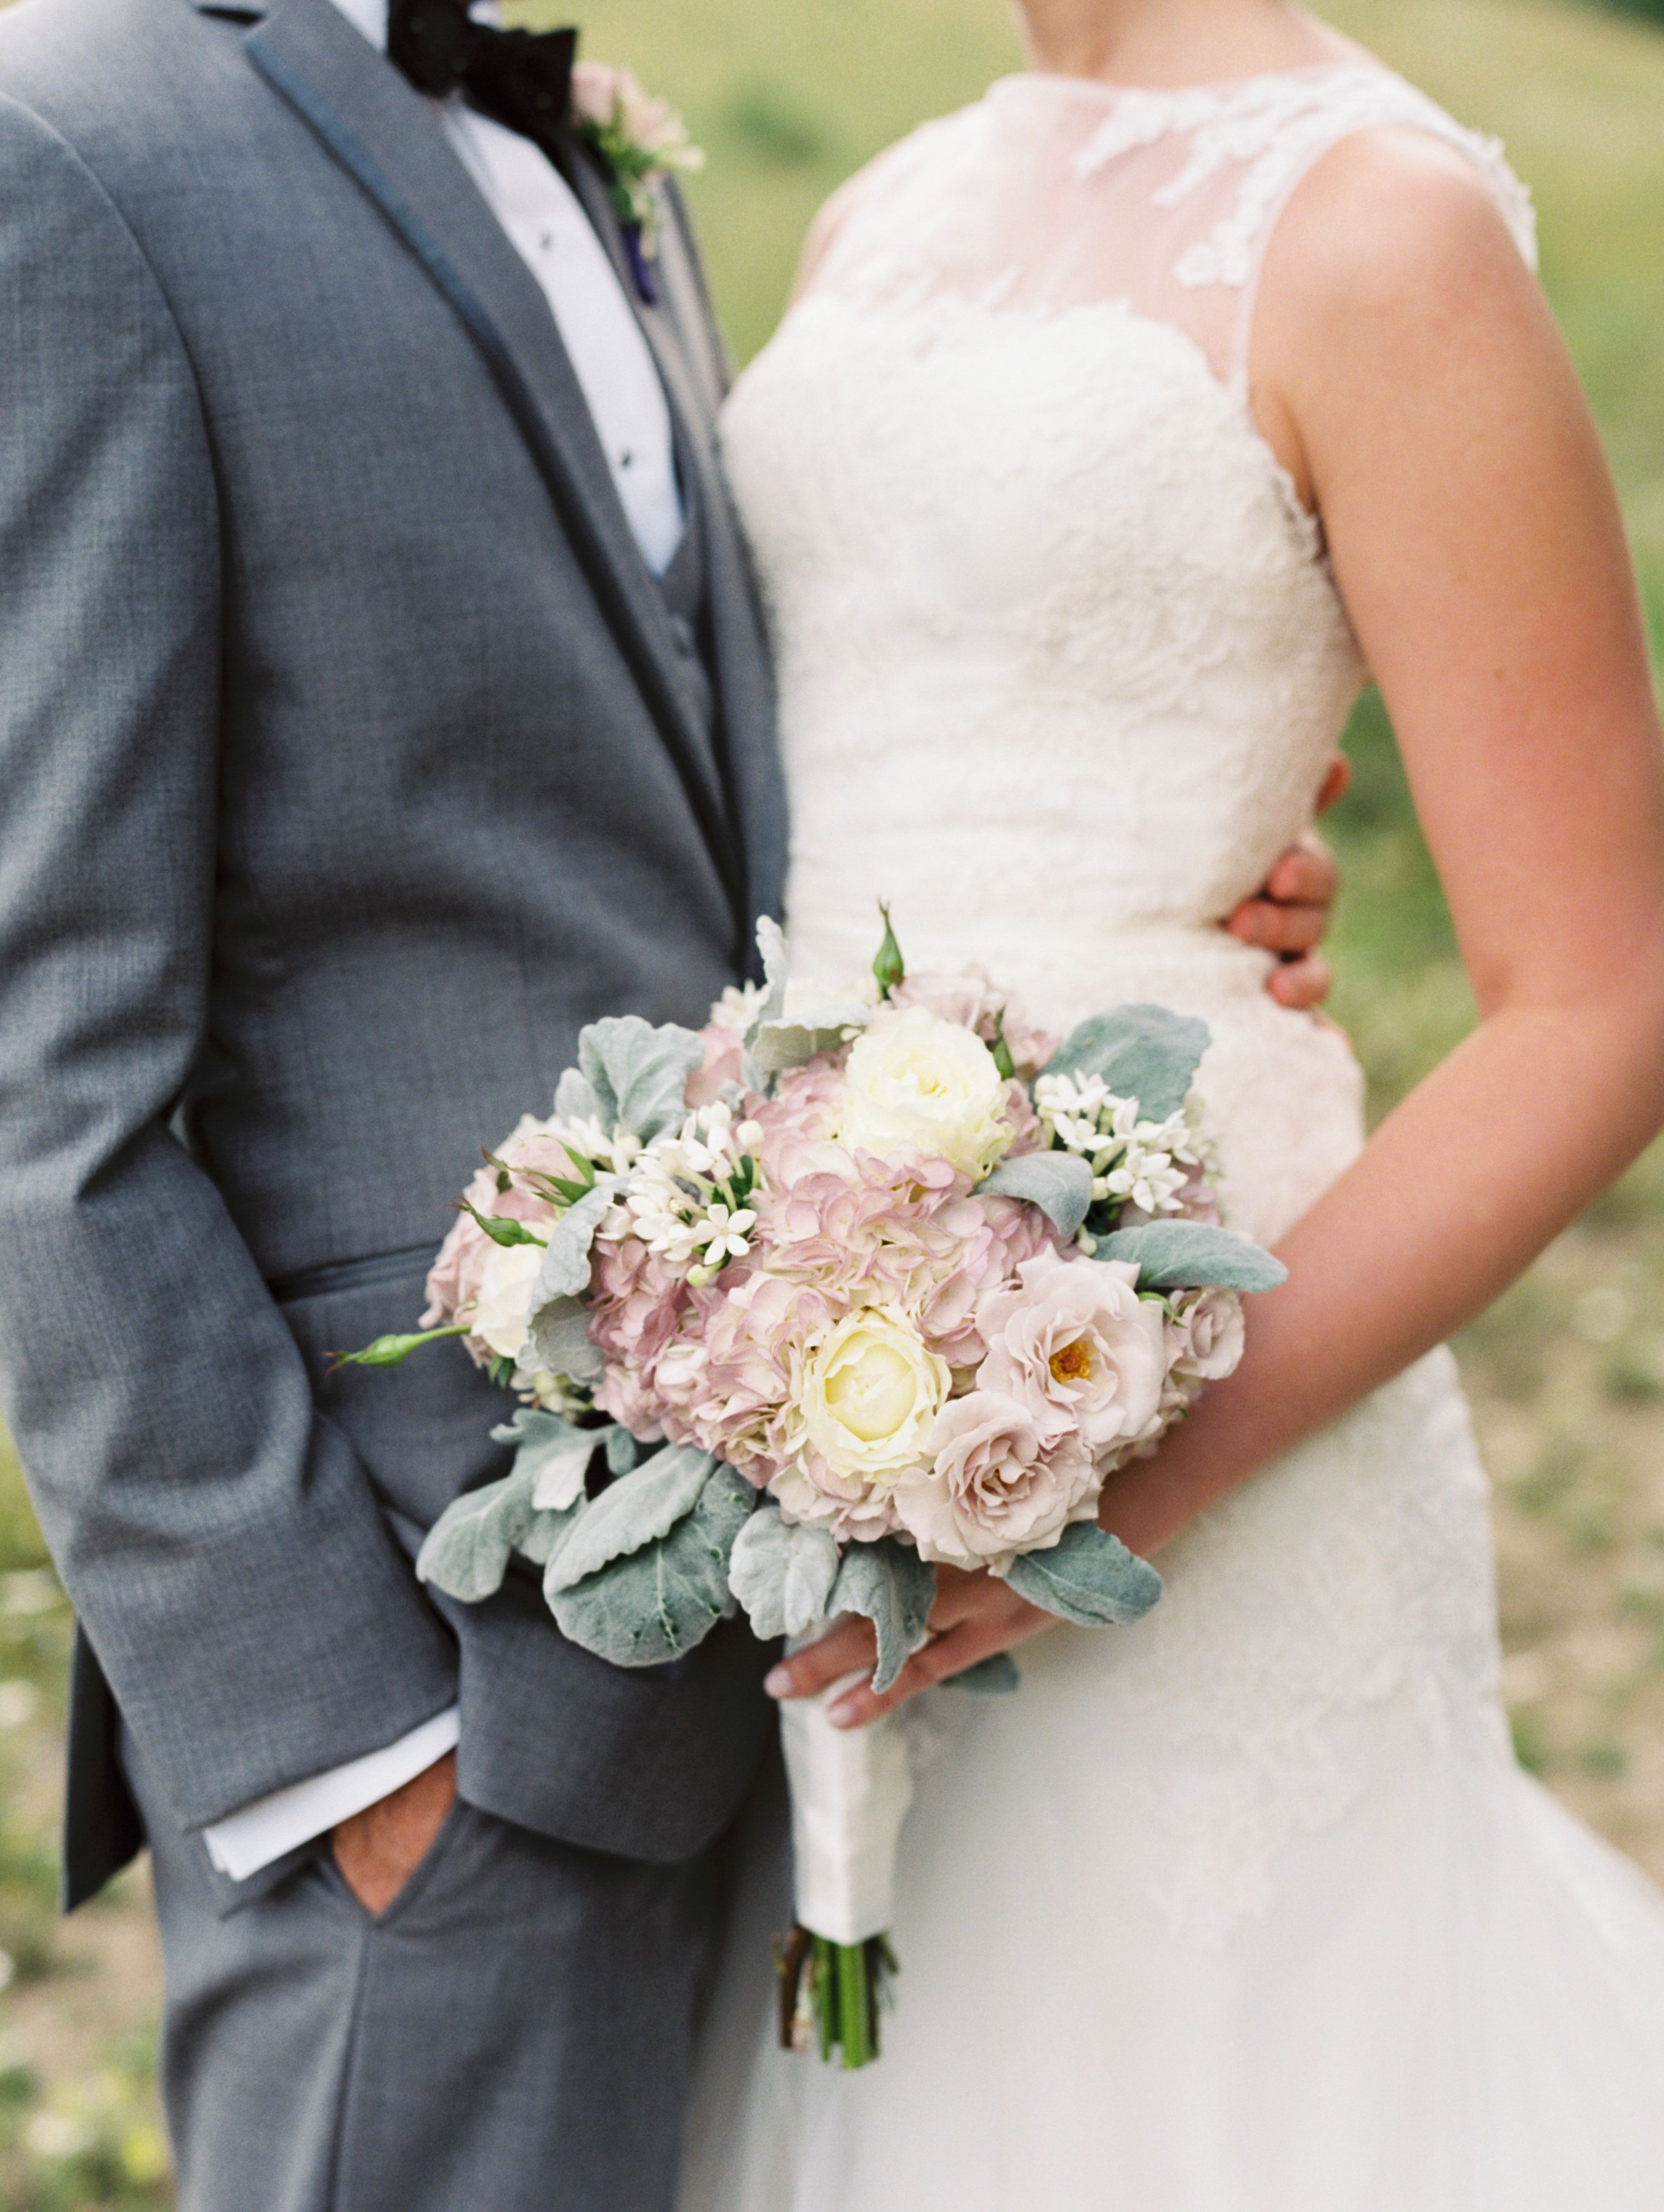 The smarter way to wed vail wedding bridal bouquets and wedding